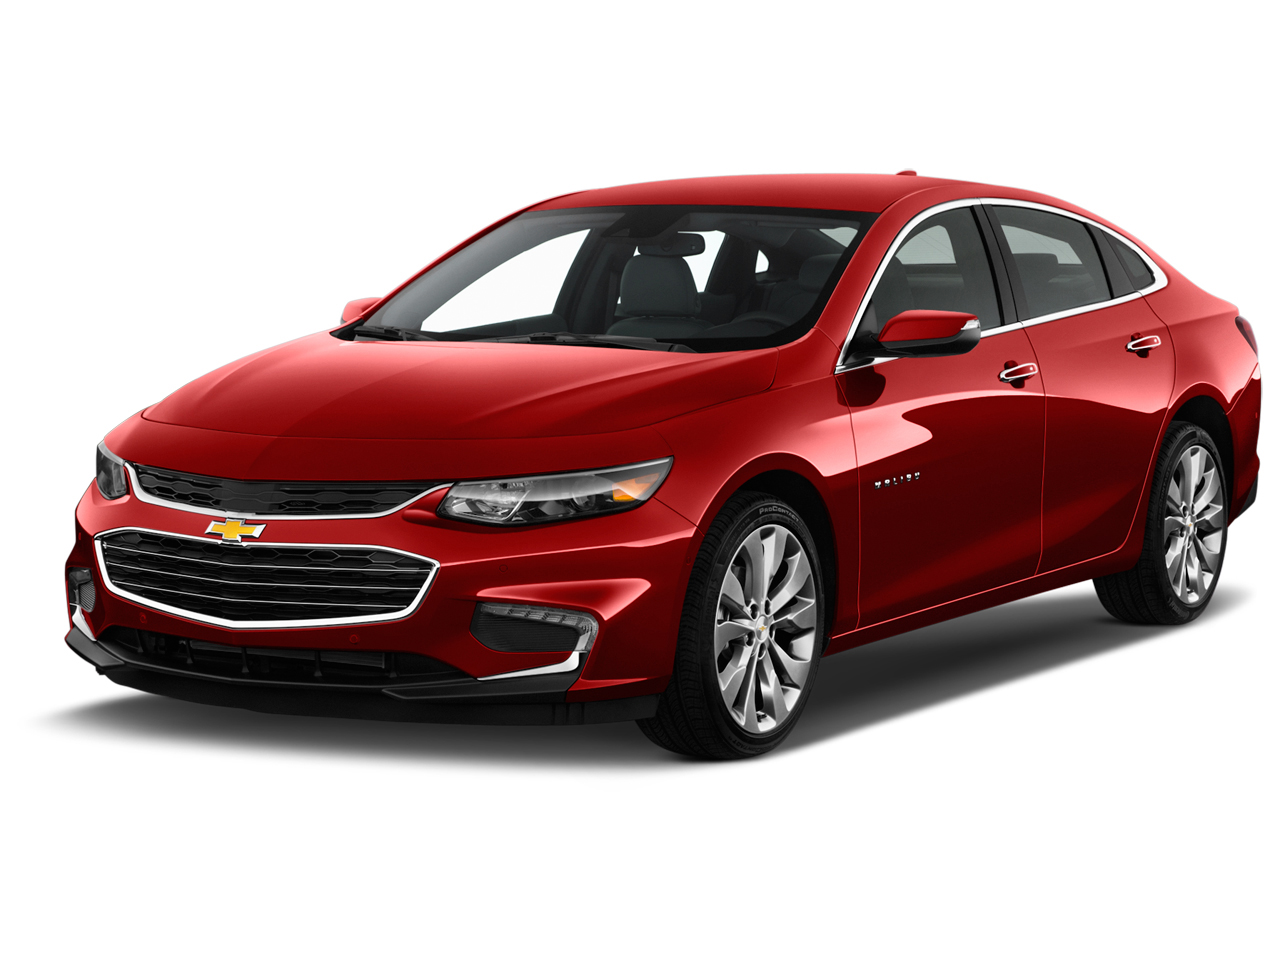 Chevrolet Malibu 2018 2 5l Lt In Uae New Car Prices